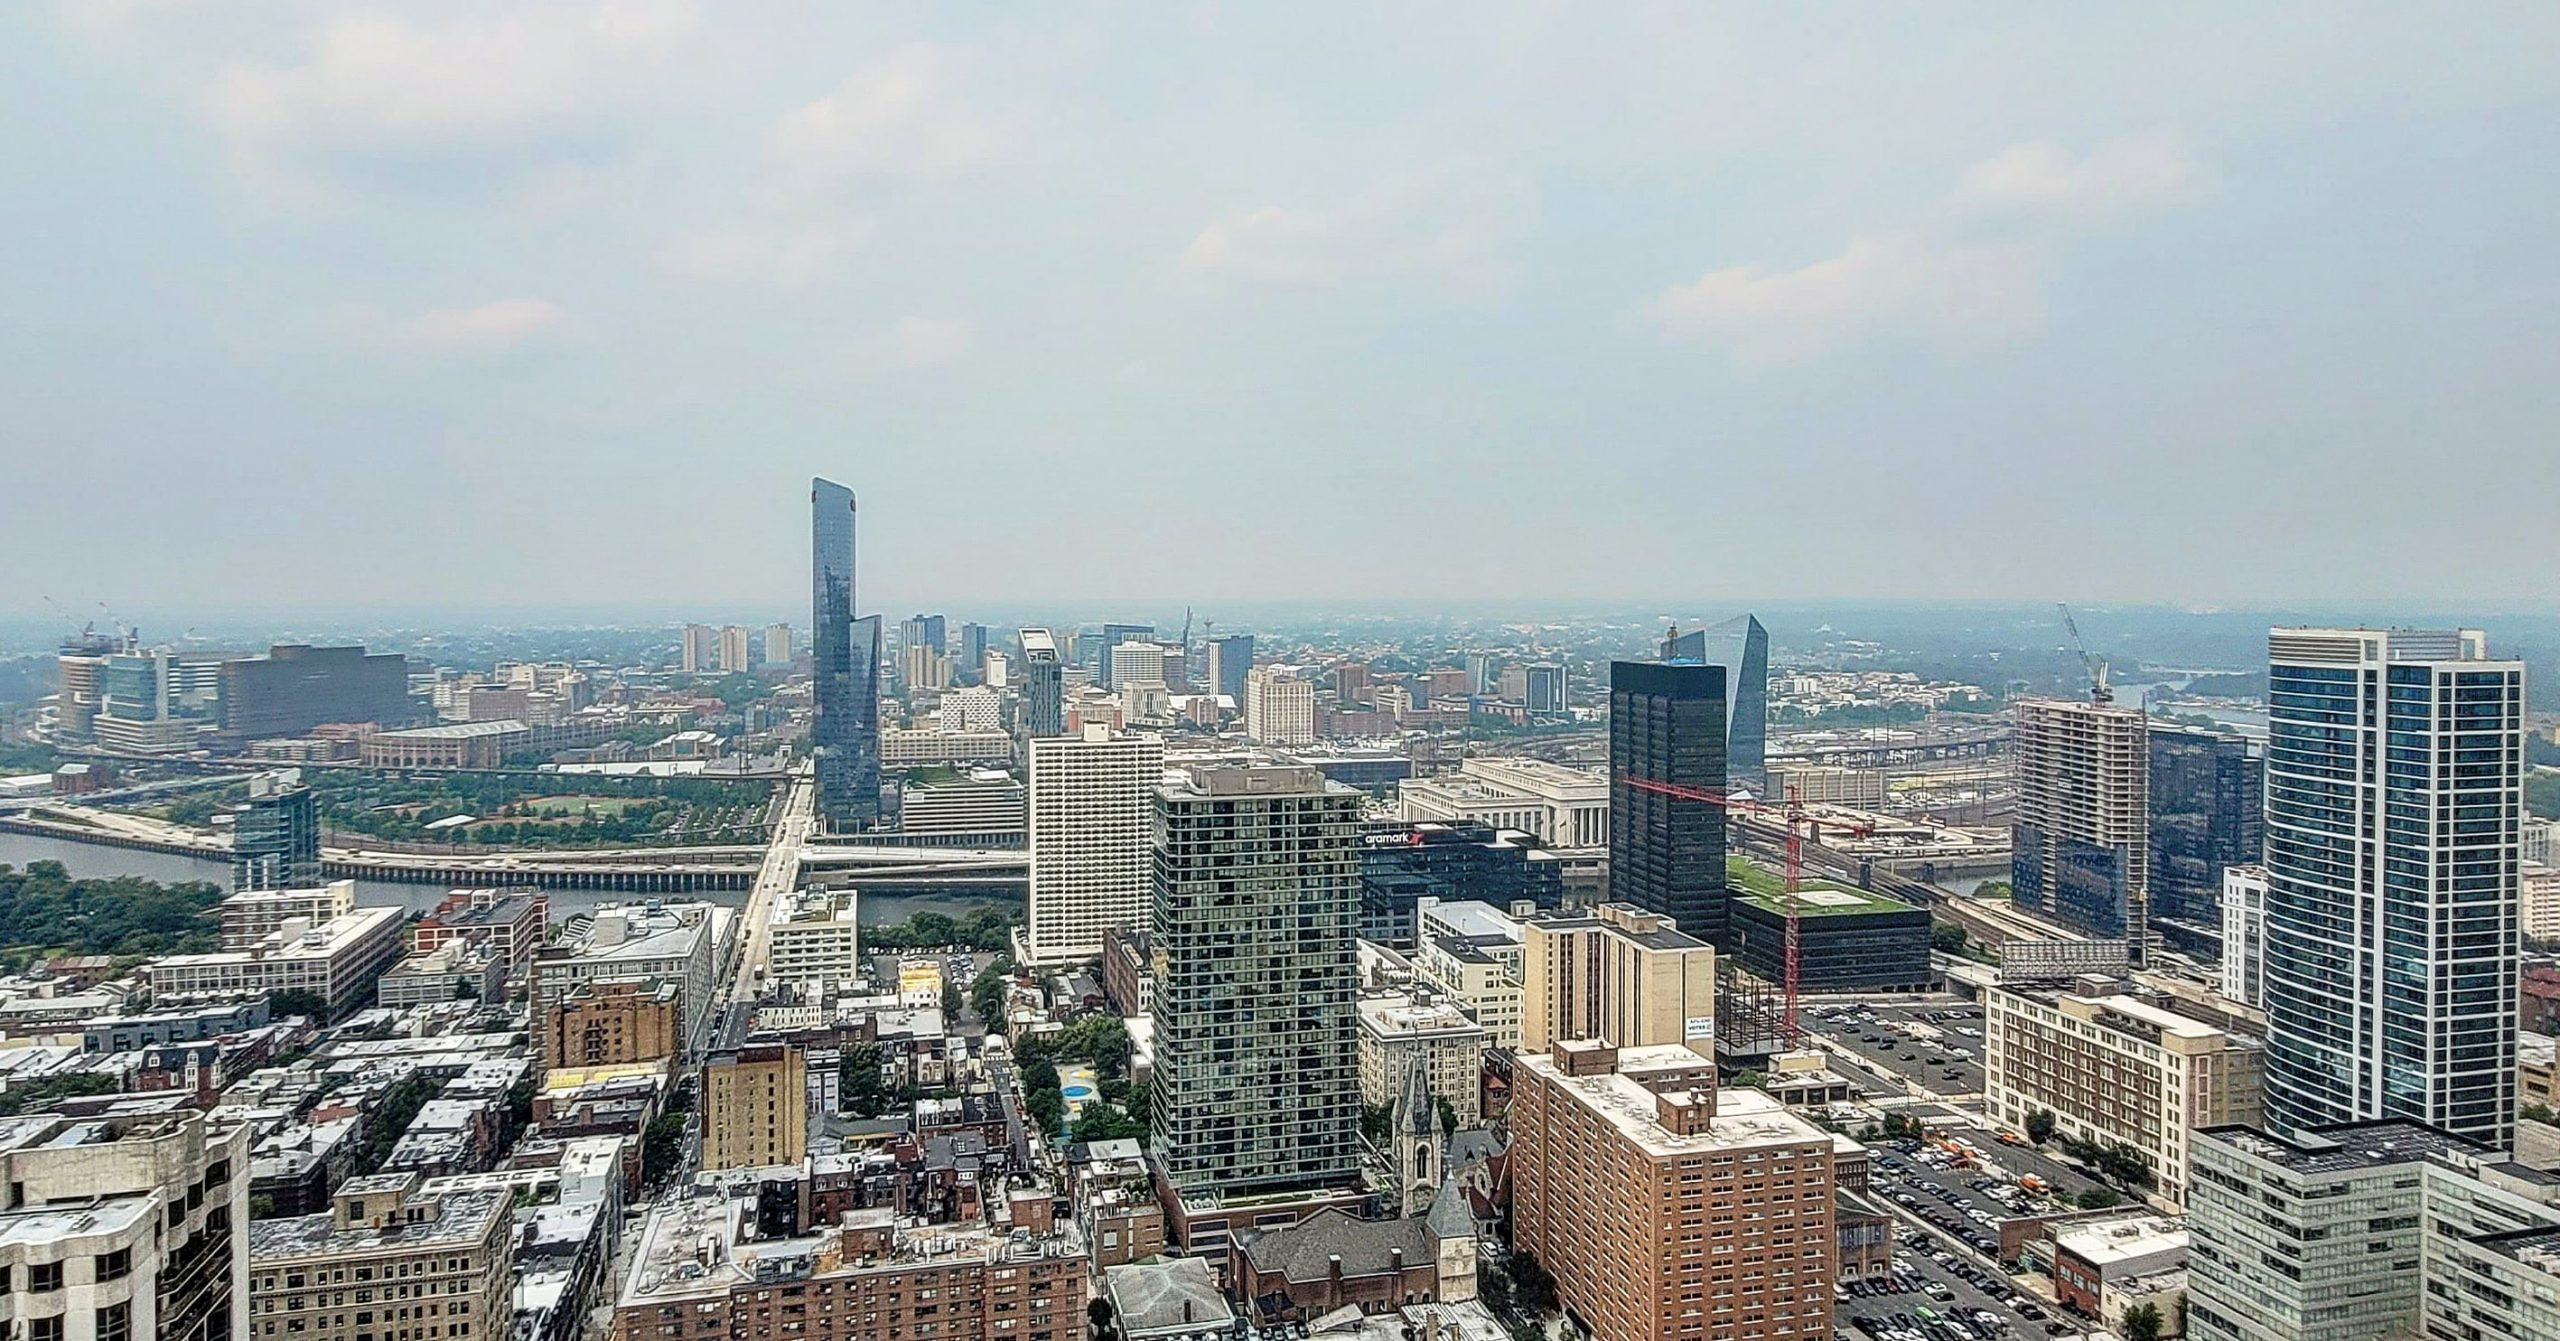 The view from The Laurel Rittenhouse looking west toward Center City West and University City. Photo by Thomas Koloski